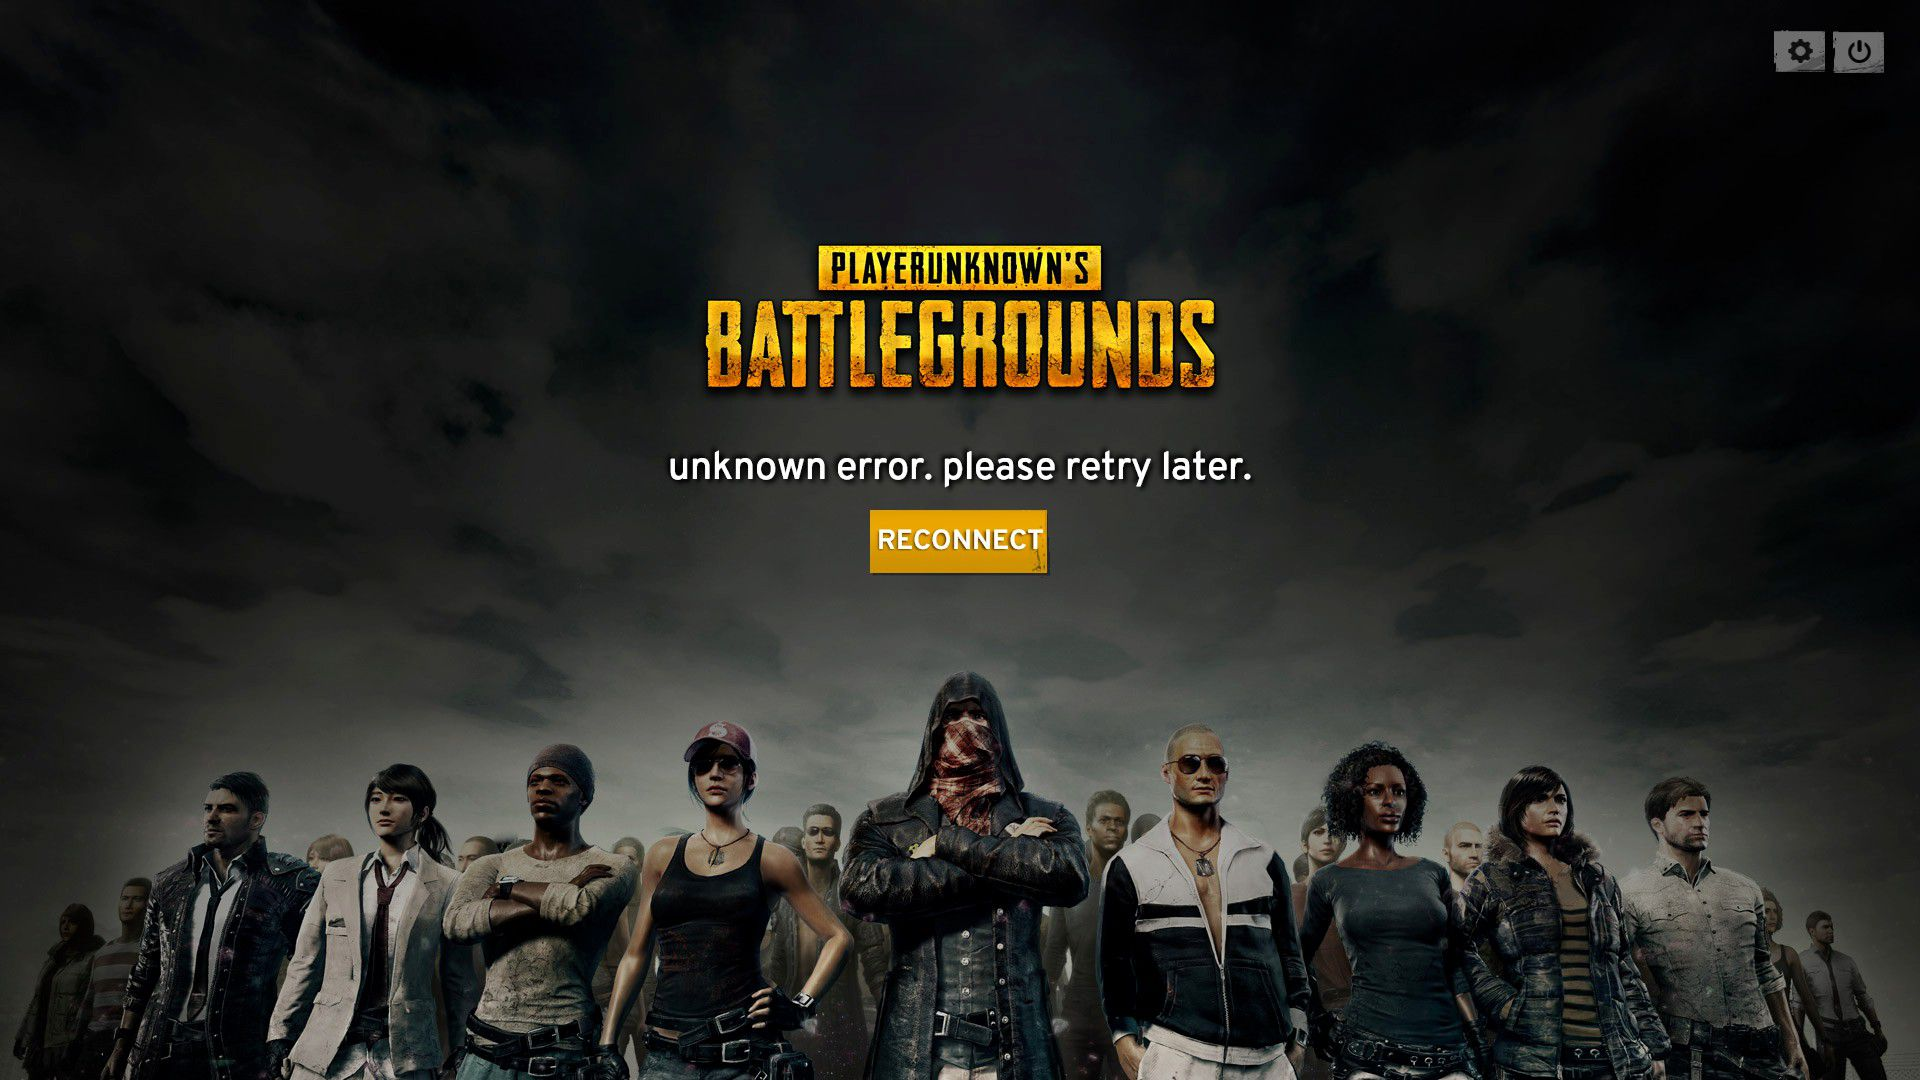 PUBG Unknown Error Please Retry Later Screen